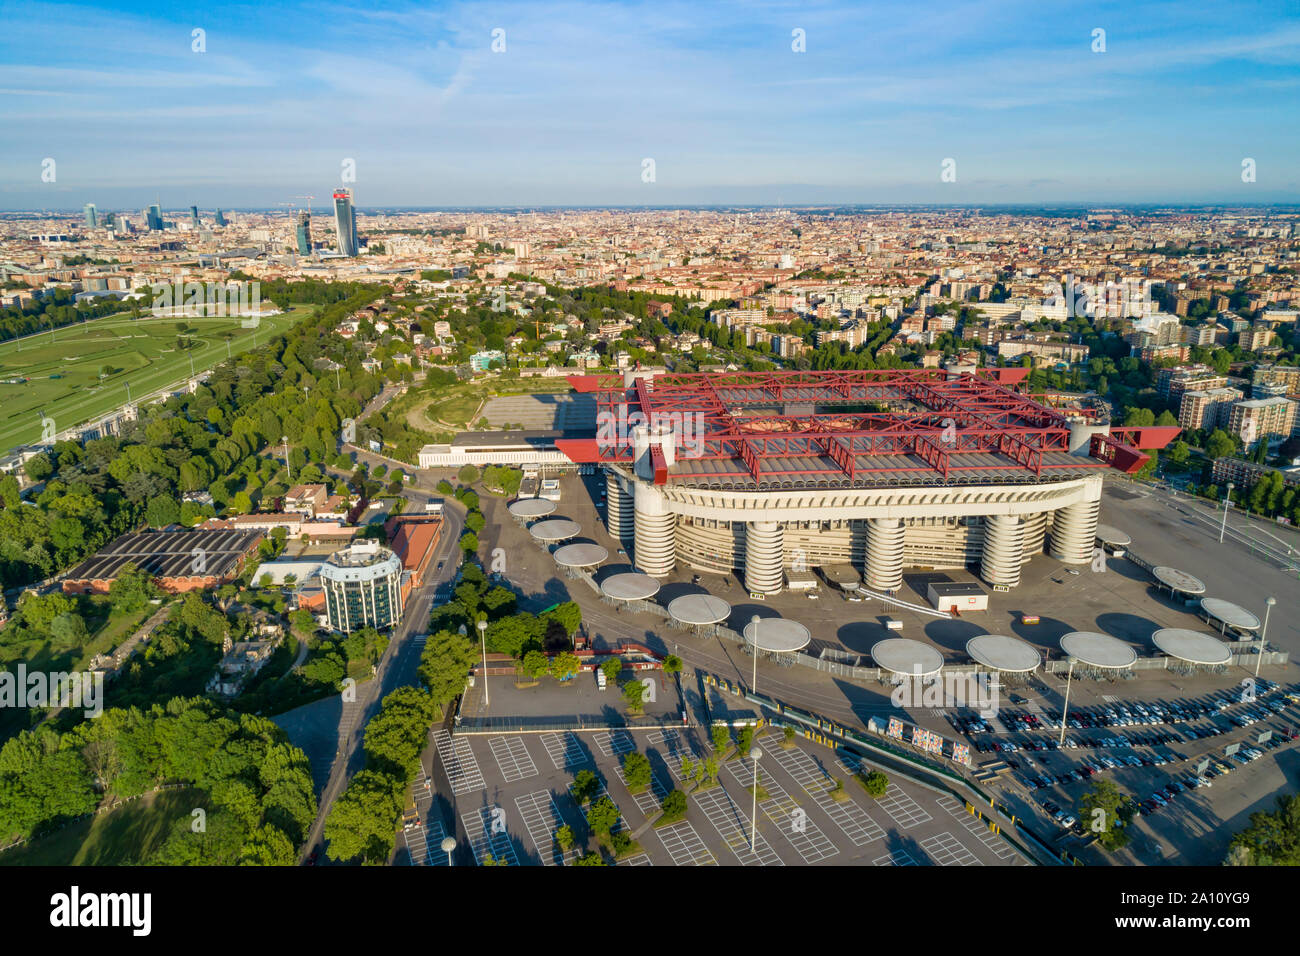 Milan cityscape and the soccer arena Meazza stadium, also known as San Siro Stadium. Aerial panoramic view. Stock Photo